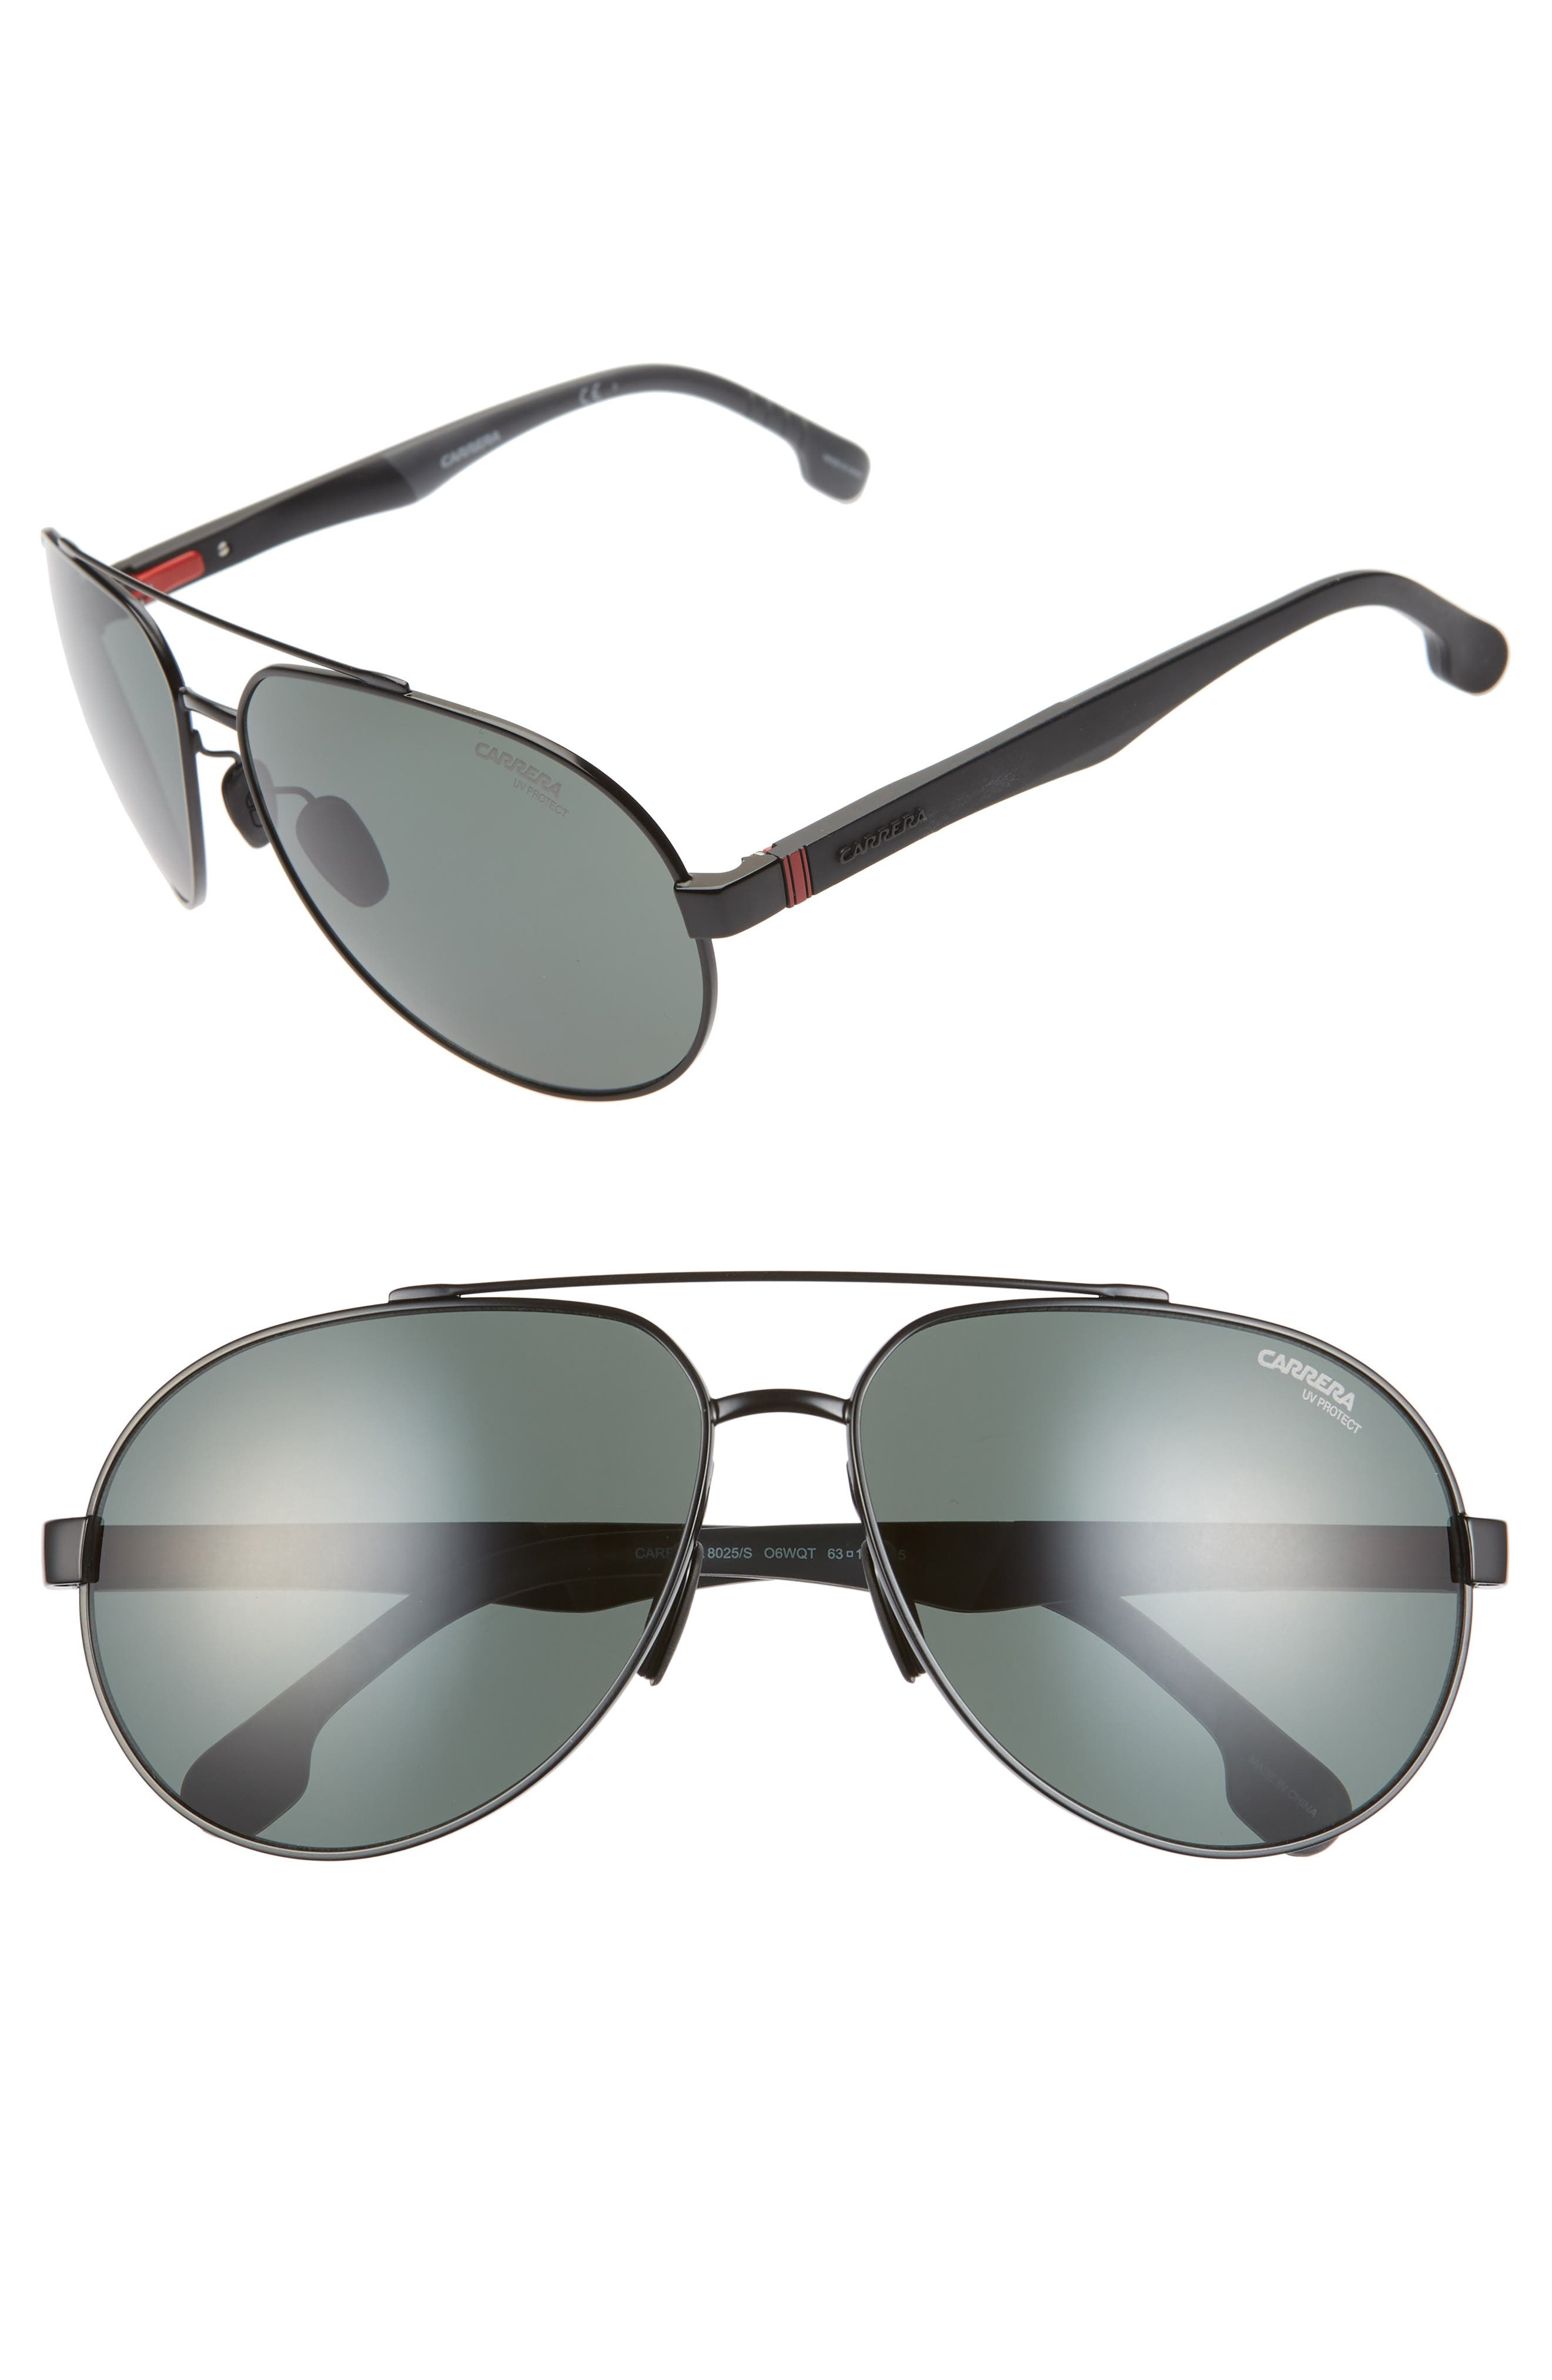 Carrera Eyewear 6m Polarized Aviator Sunglasses - Blue/ Ruthenium/ Gray